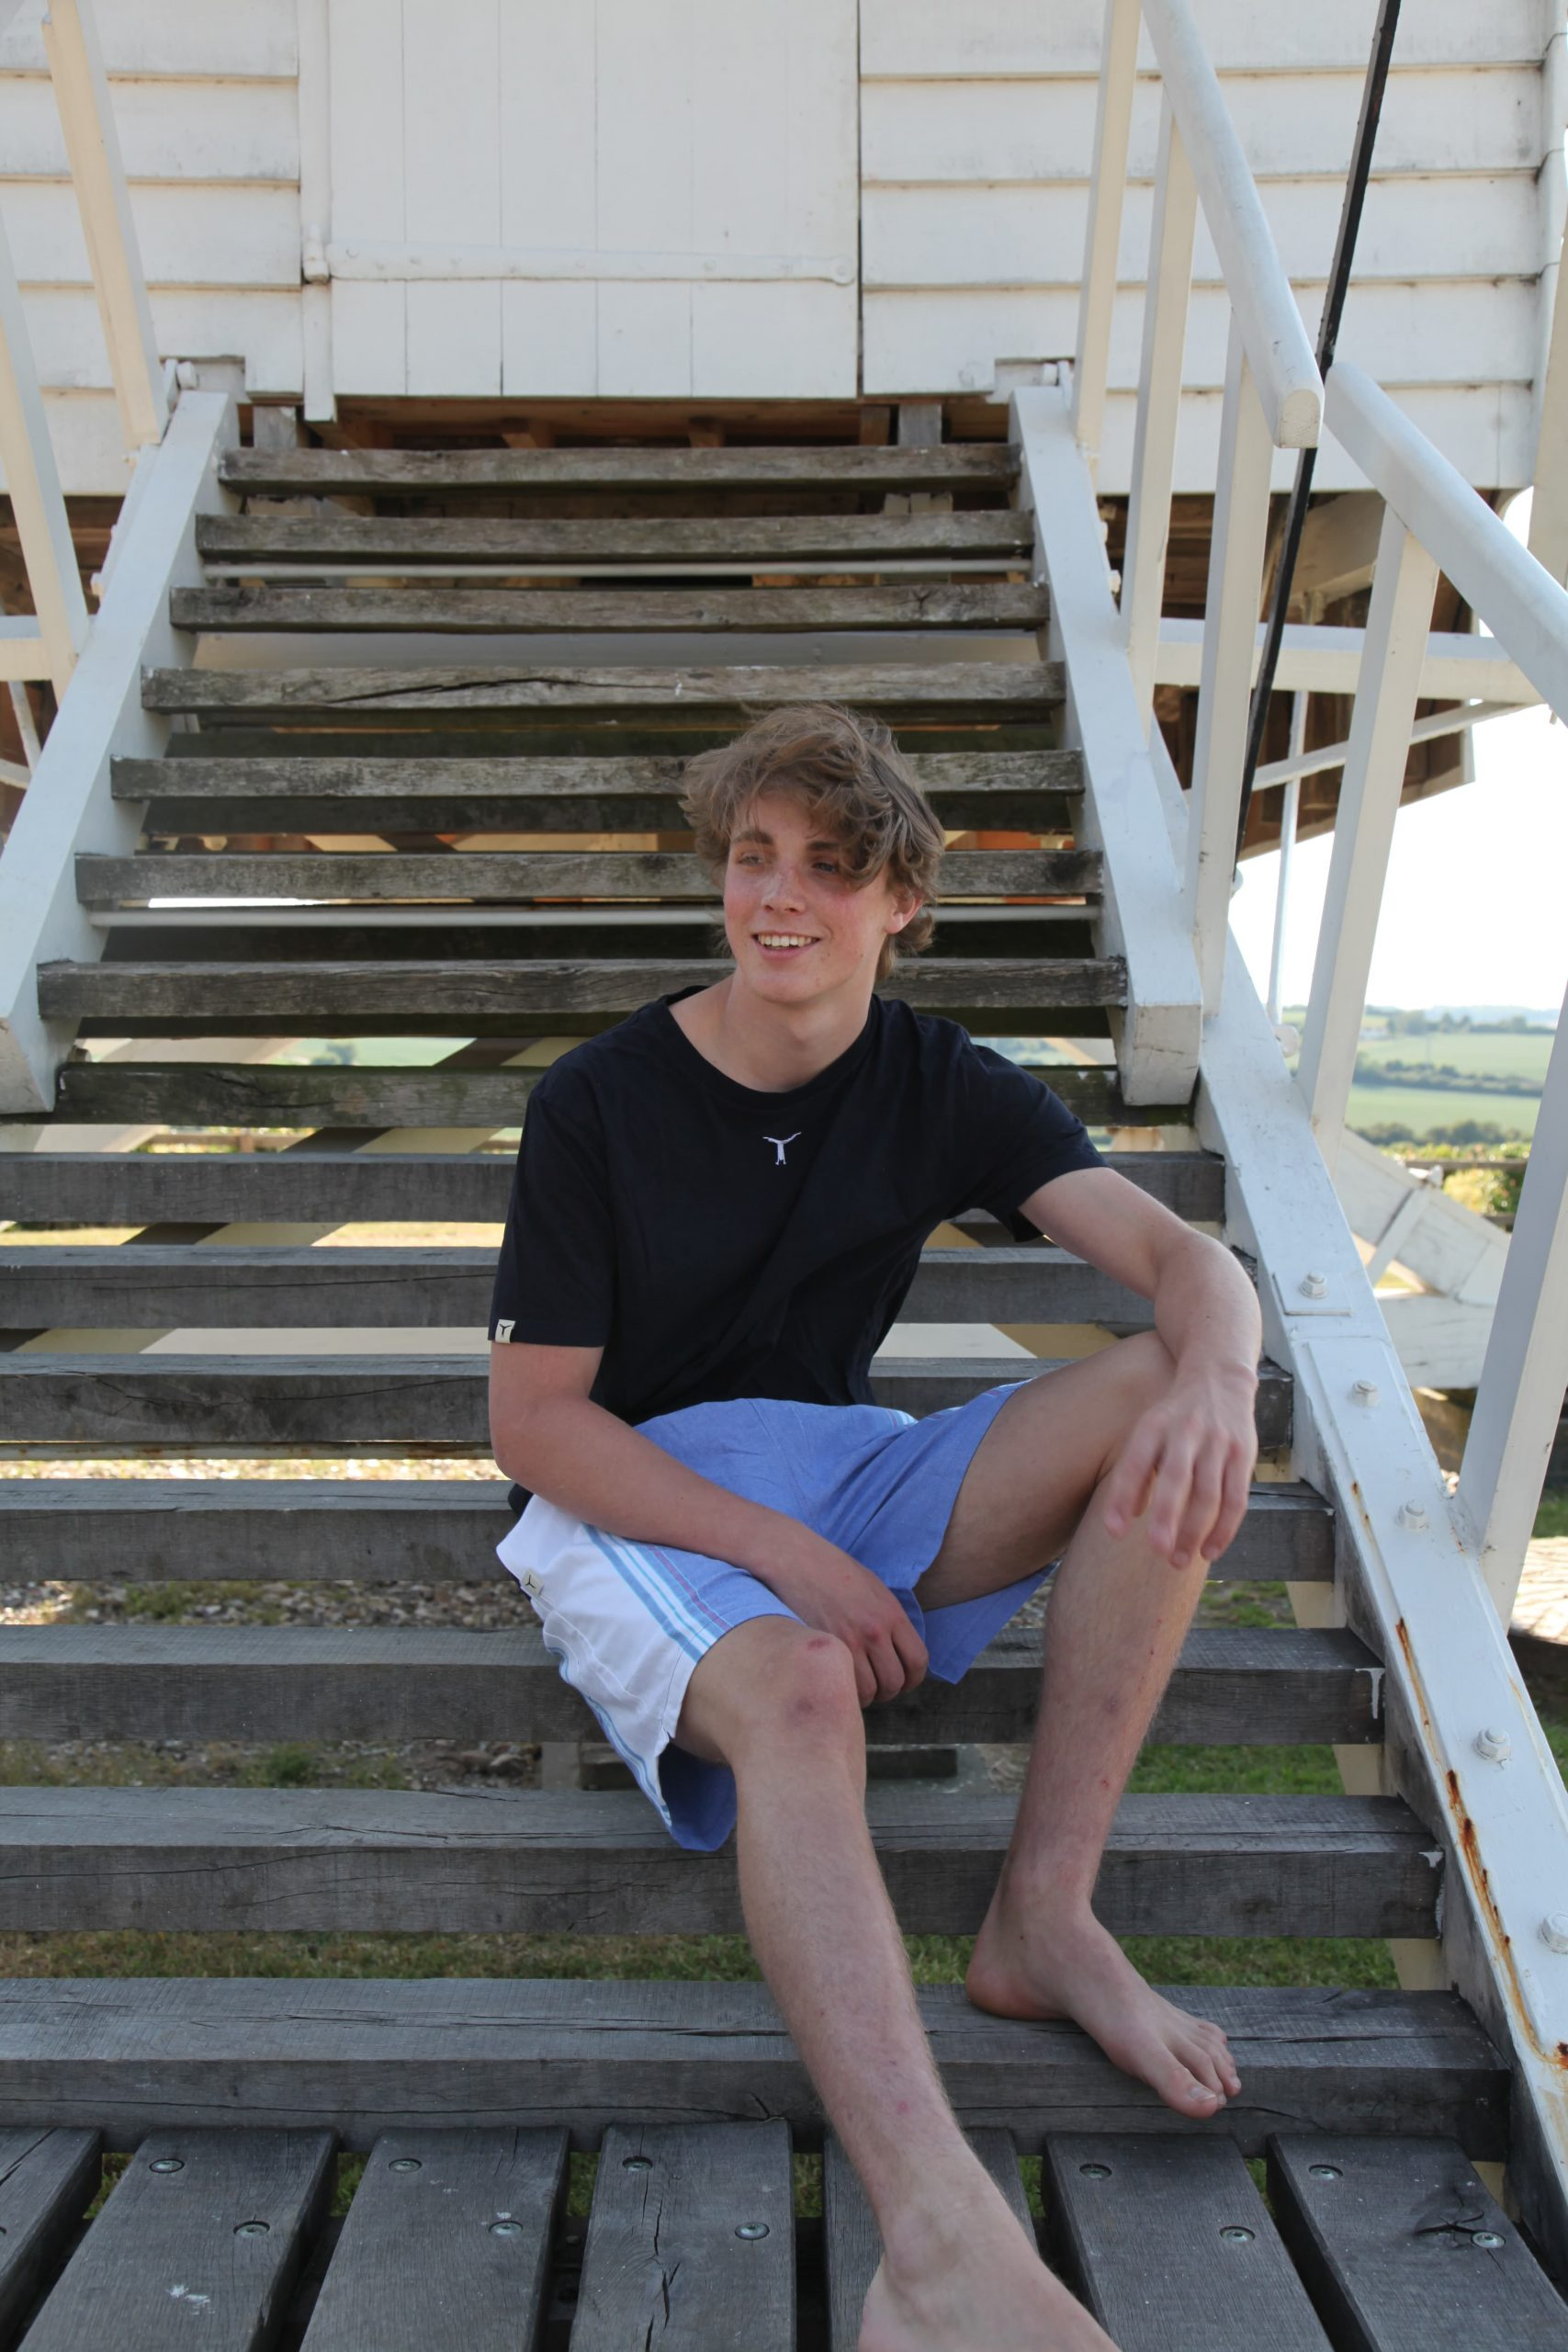 Smiling young man sitting on outdoor wooden stairs wearing a black t-shirt and eco-friendly colorful kikoy shorts